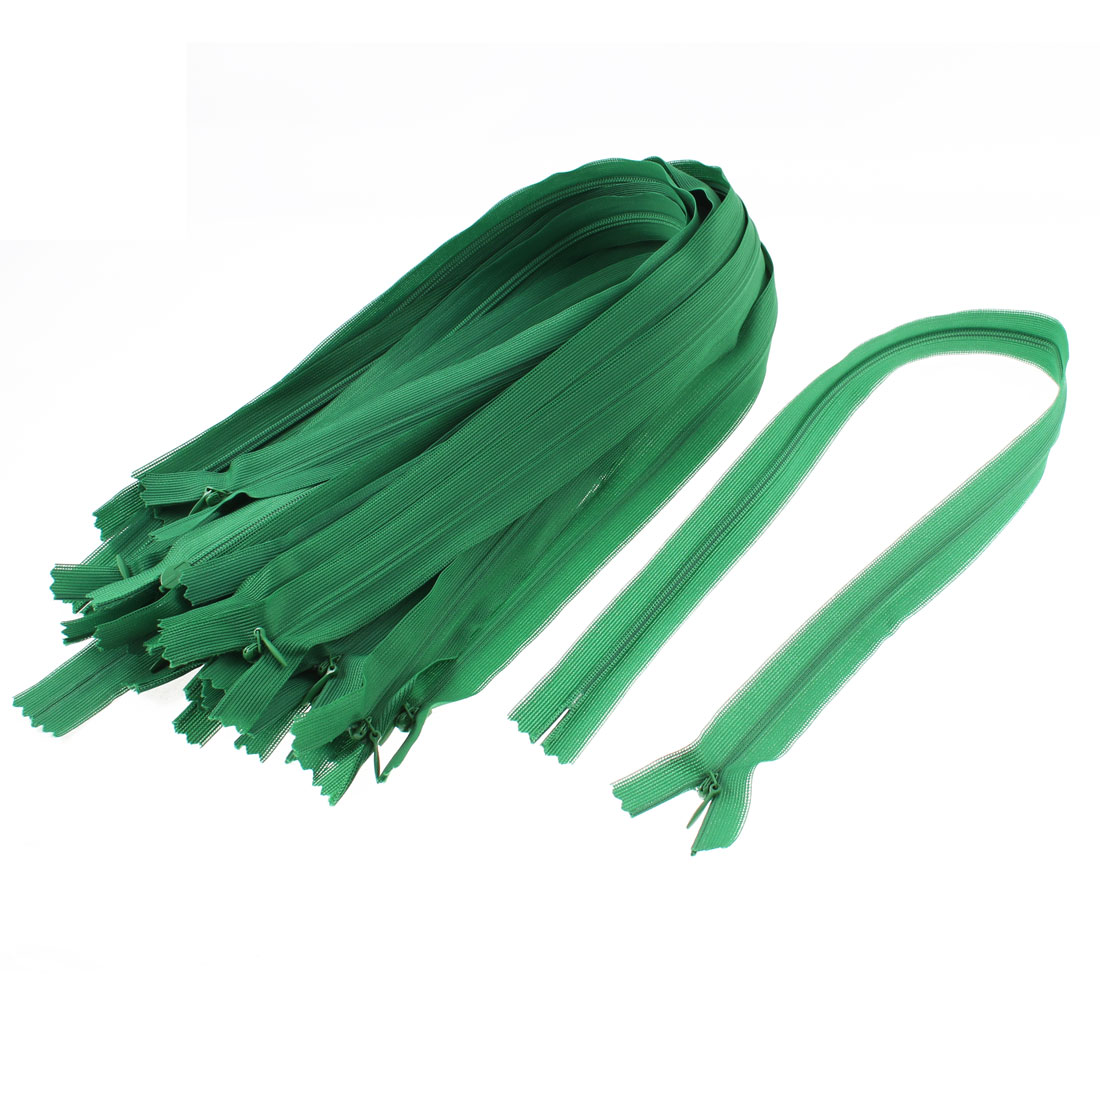 Dress Pants Closed End Nylon Zippers Tailor Sewing Craft Tool Green 50cm 20 Pcs